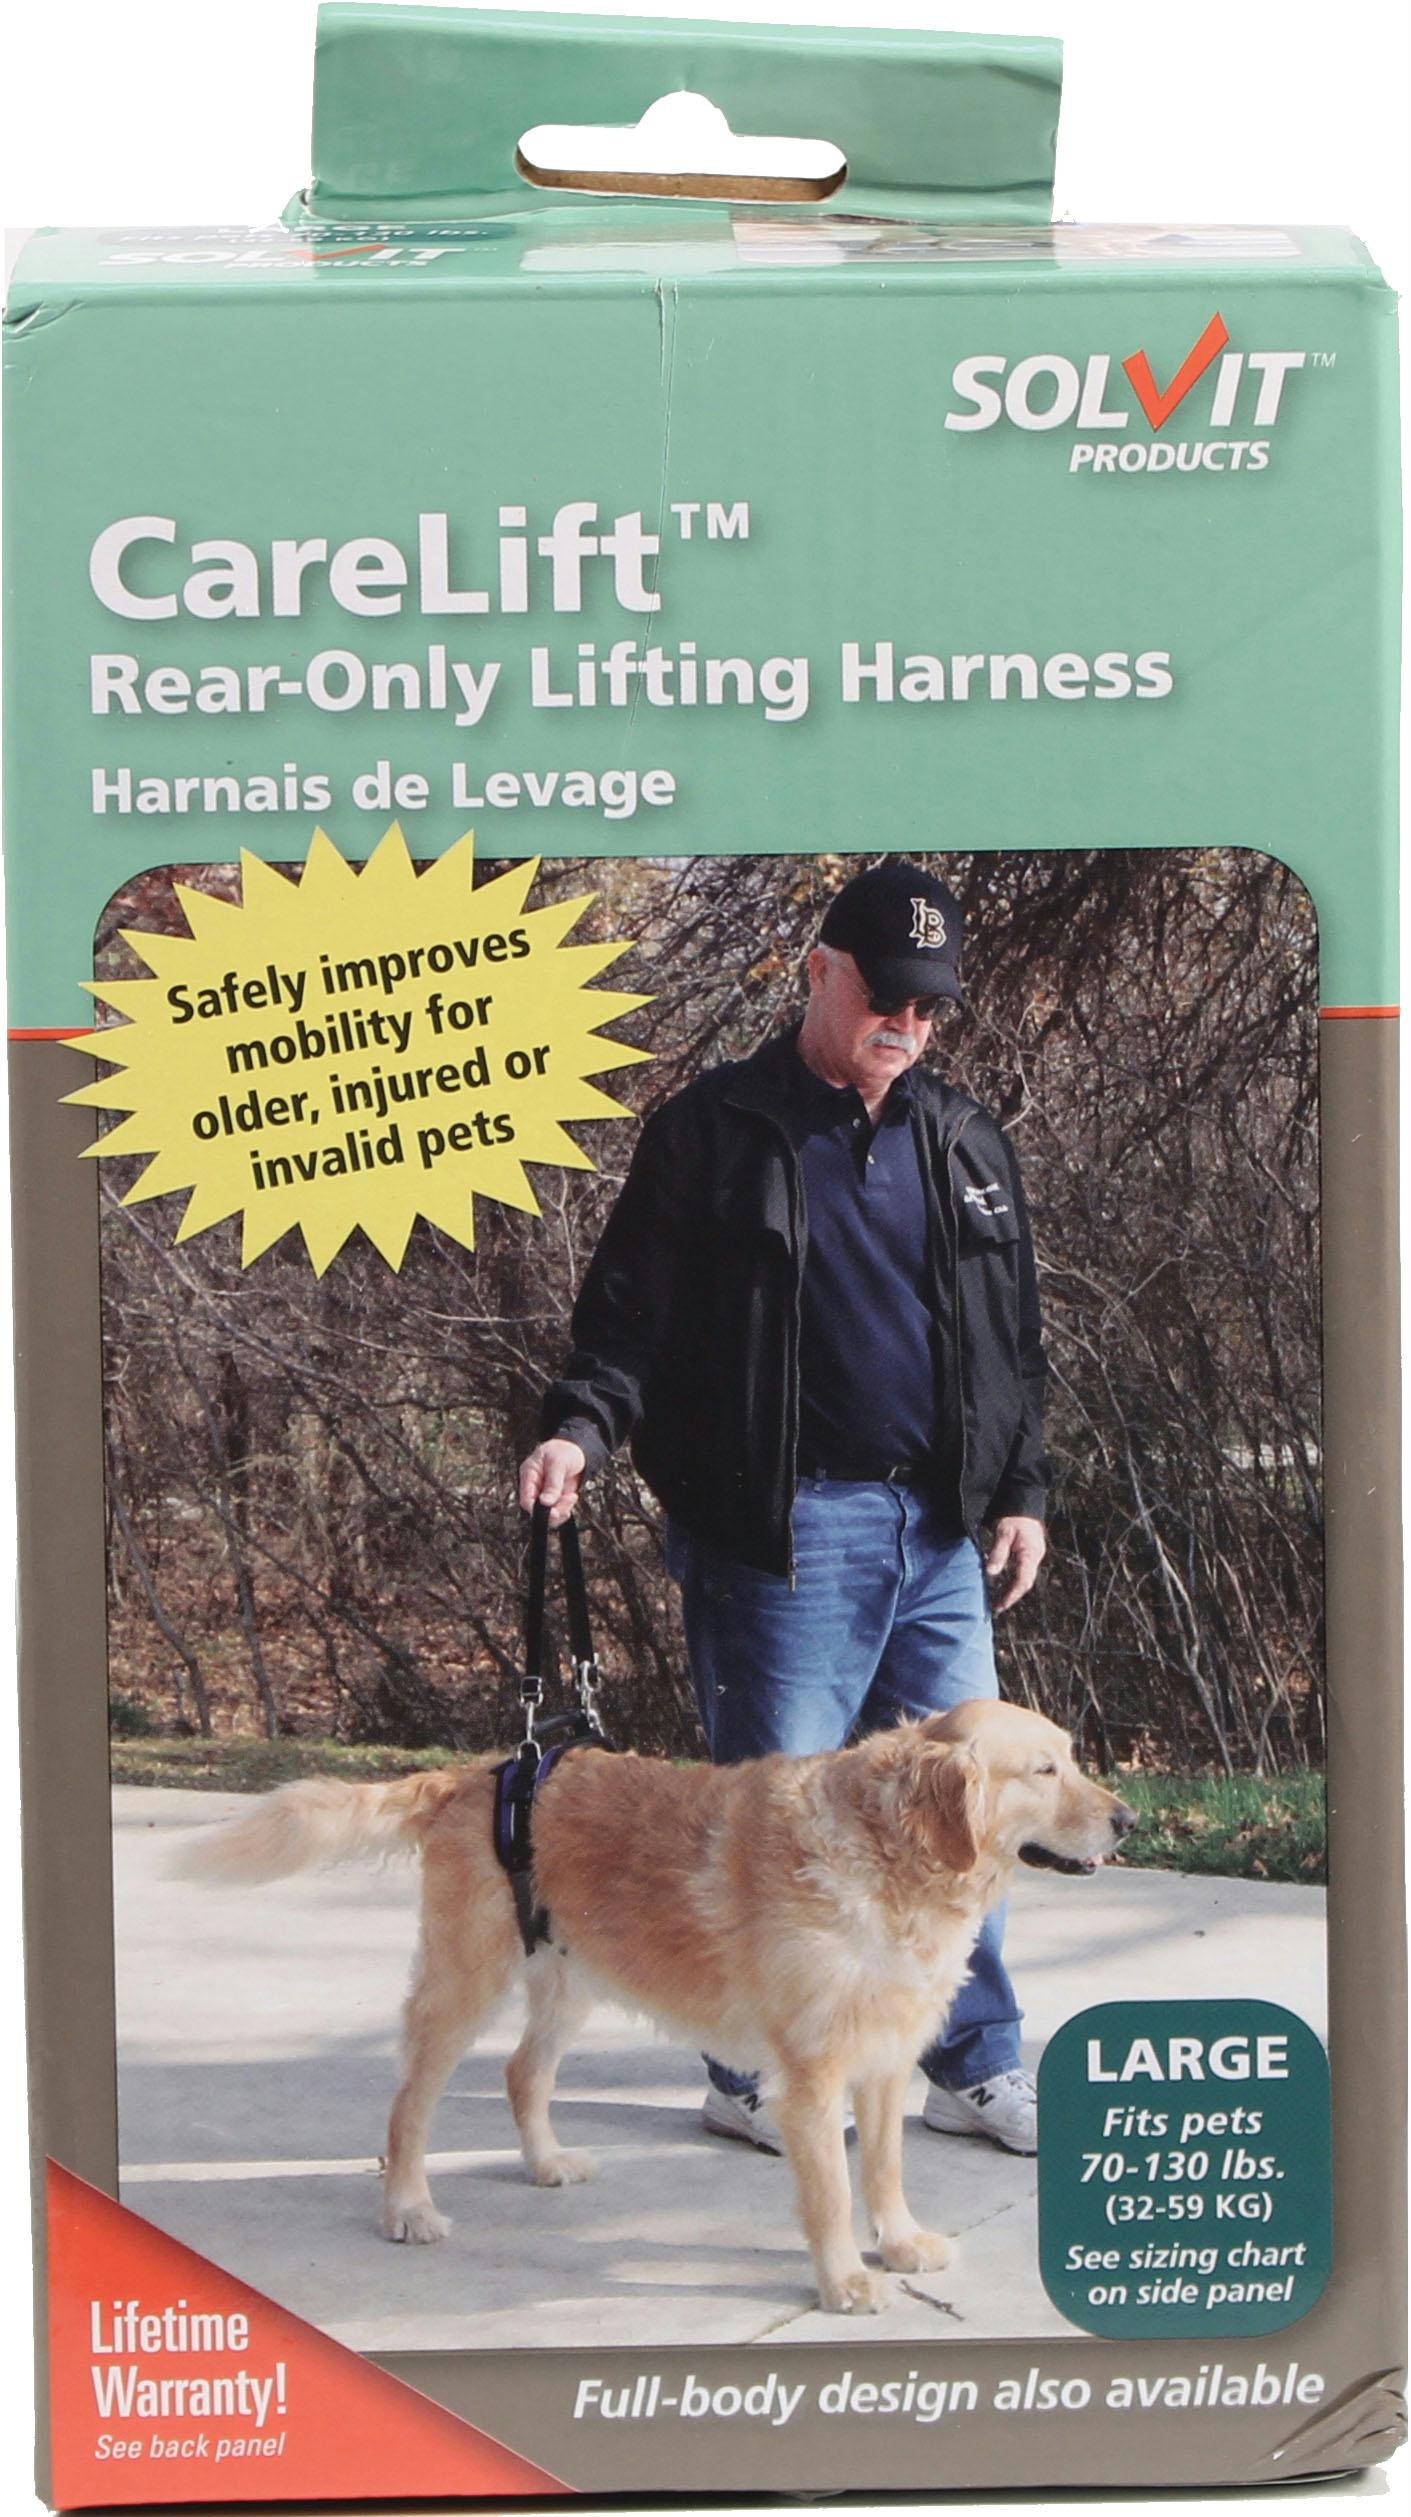 Carelift Rear-only Lifting Harness For Dogs | eBay